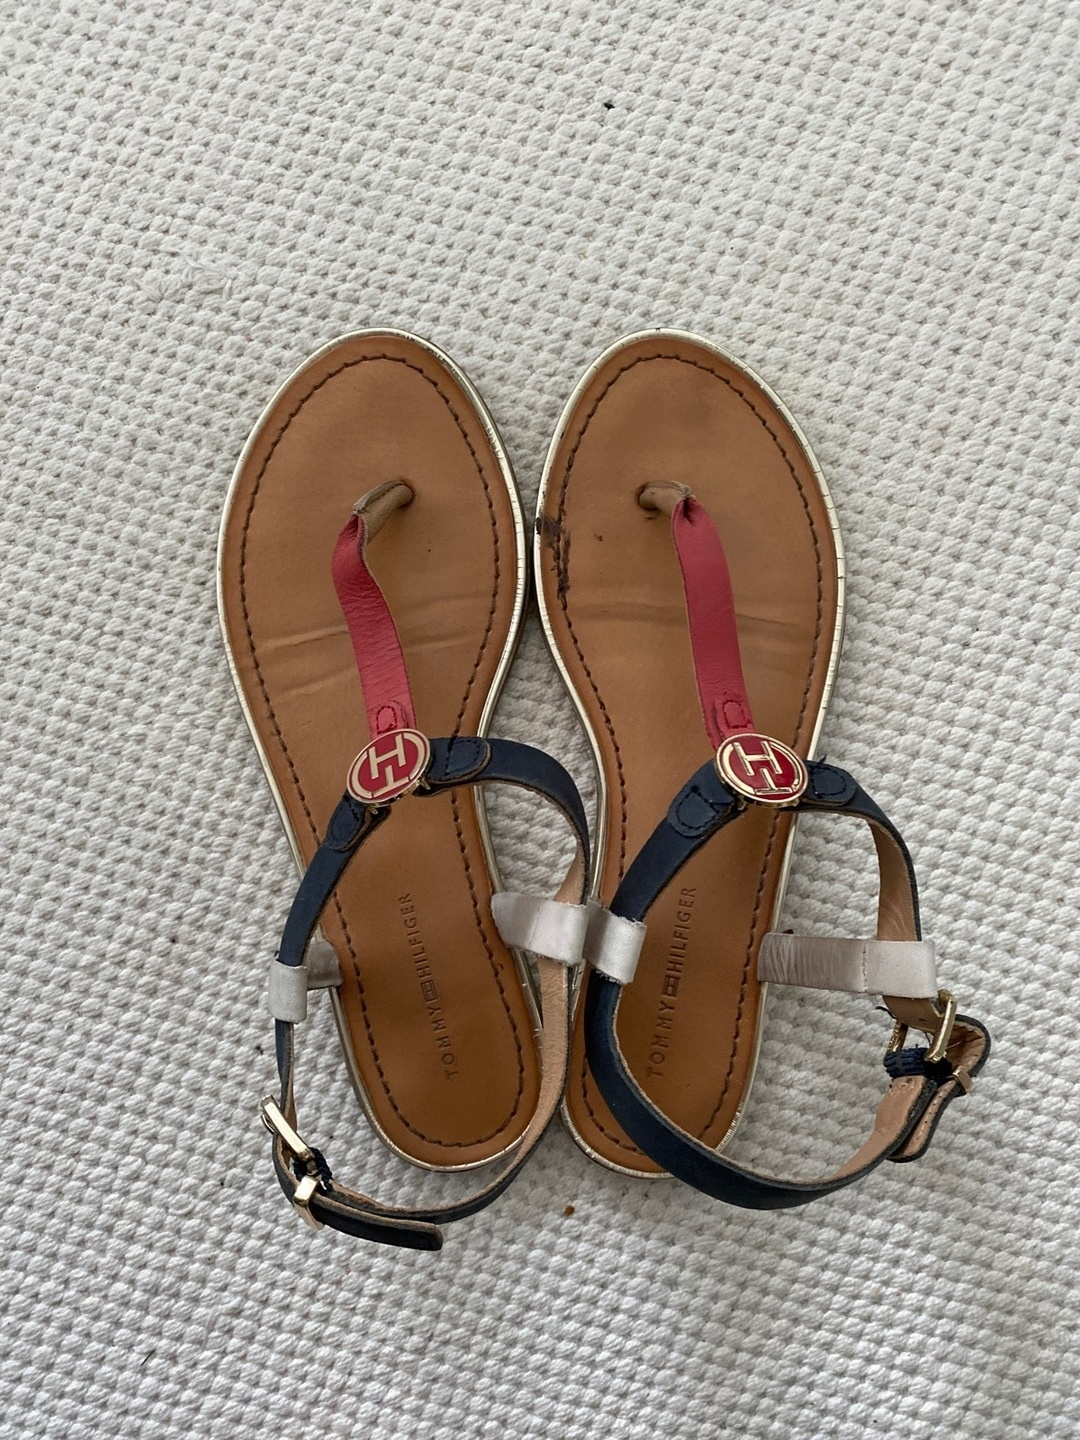 Women's sandals & slippers - TOMMY HILFIGER photo 2